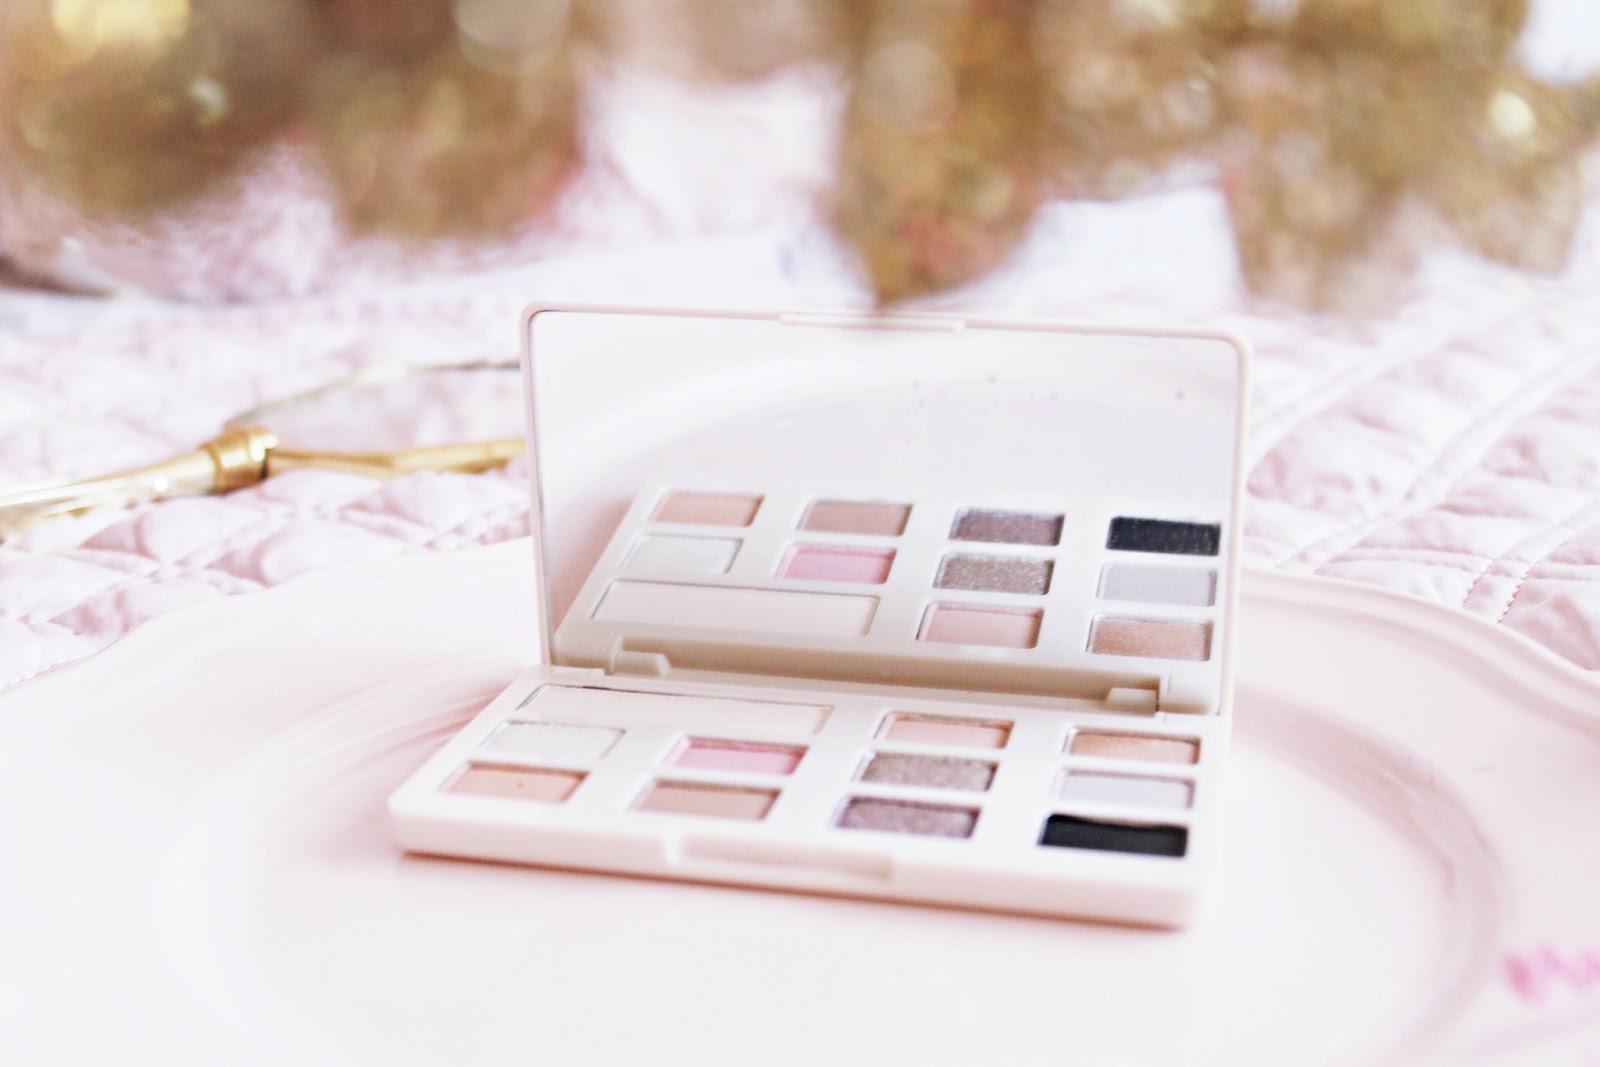 Too Faced White Chocolate Chip palette review and swatches